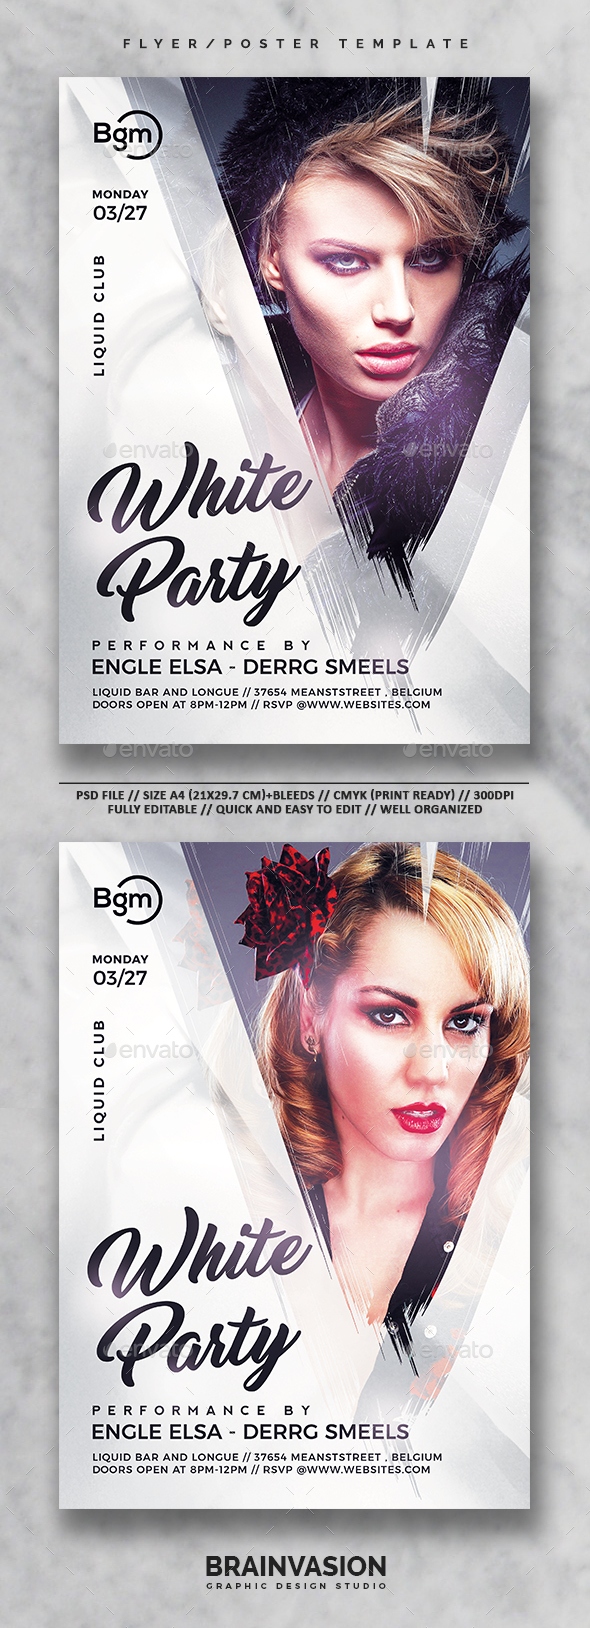 White Party Flyer/Poster Template Vol.01 - Clubs & Parties Events